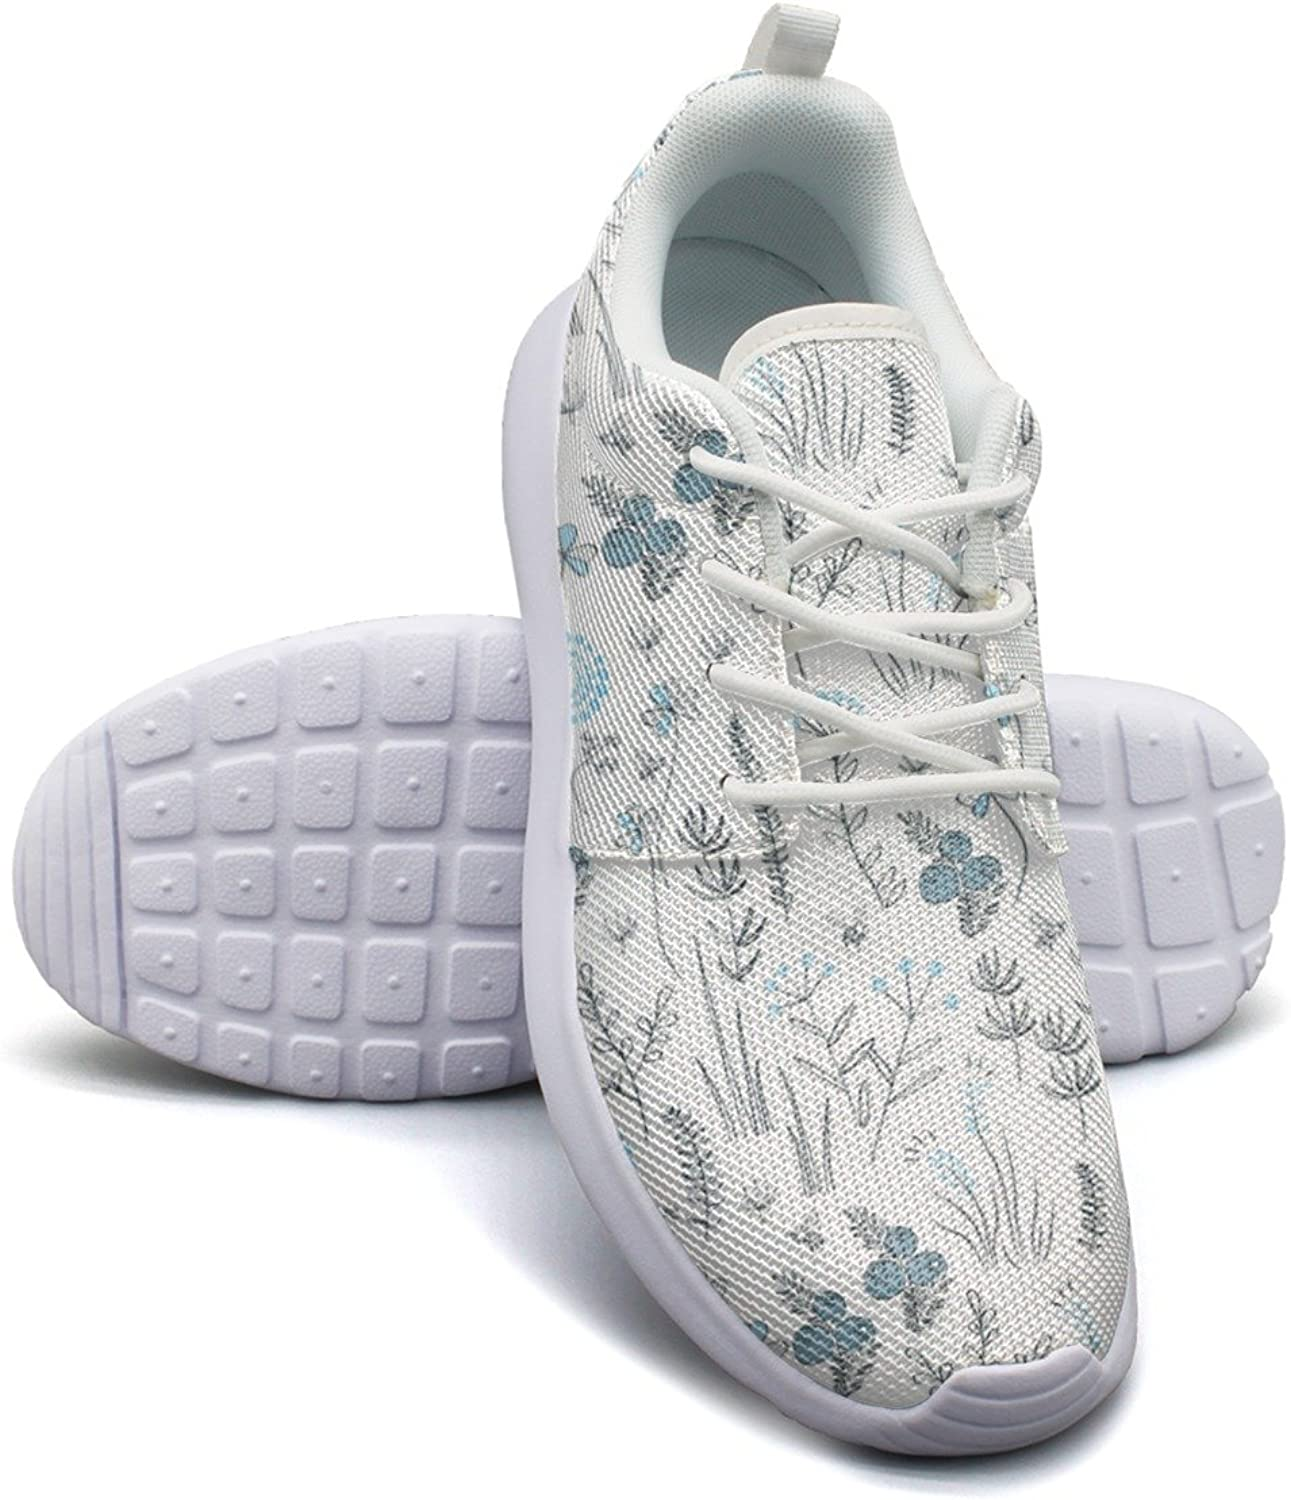 Eoyles gy Floral with Wild Herbs Forest Woman Slip Resistant Lightweight Running Sneakers shoes